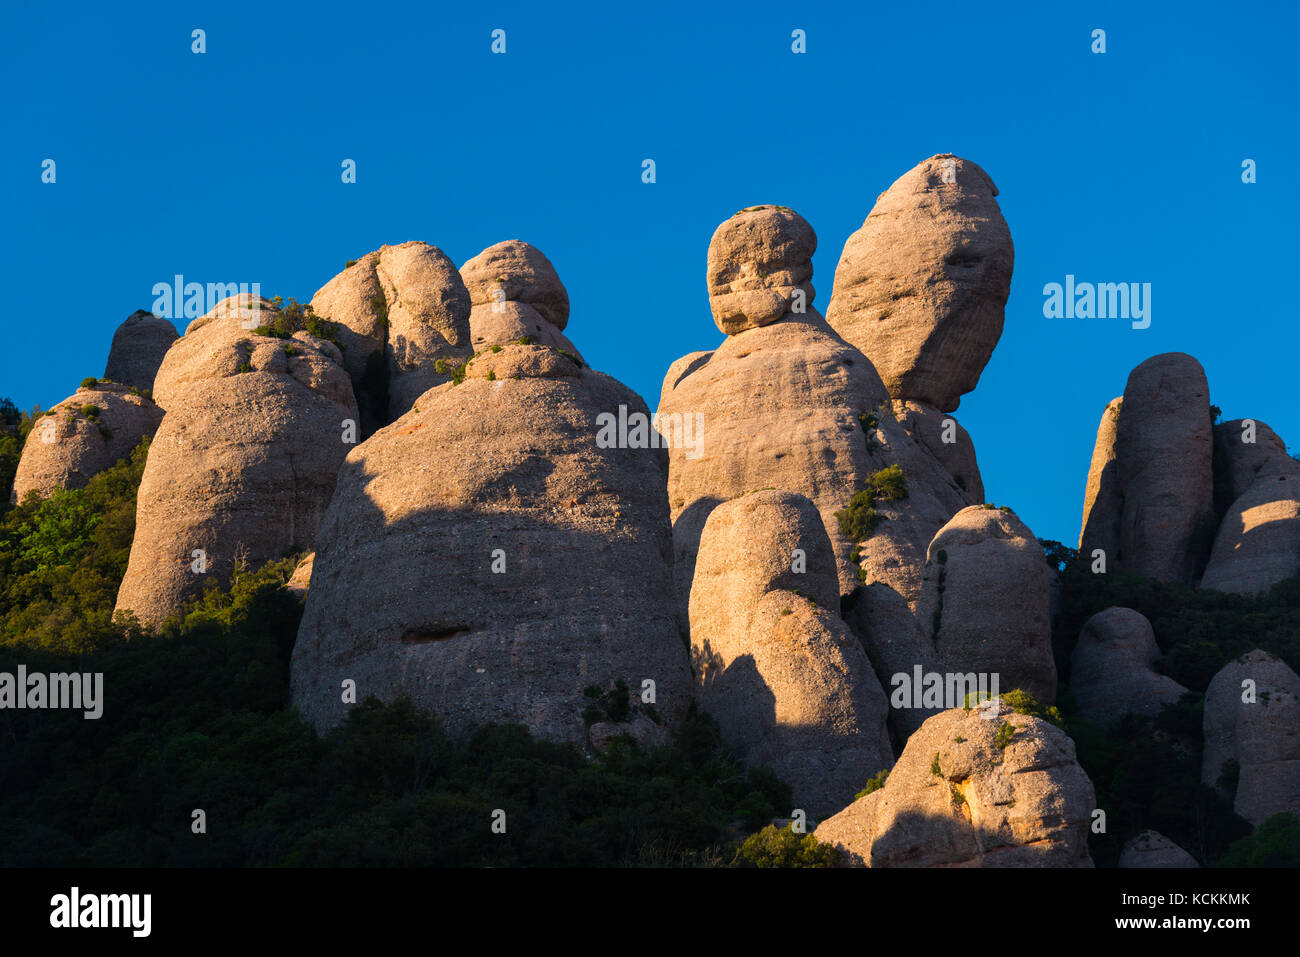 View of the rock formations of El Dit, La Patata and El Lloro in the Montserrat mountains - Stock Image